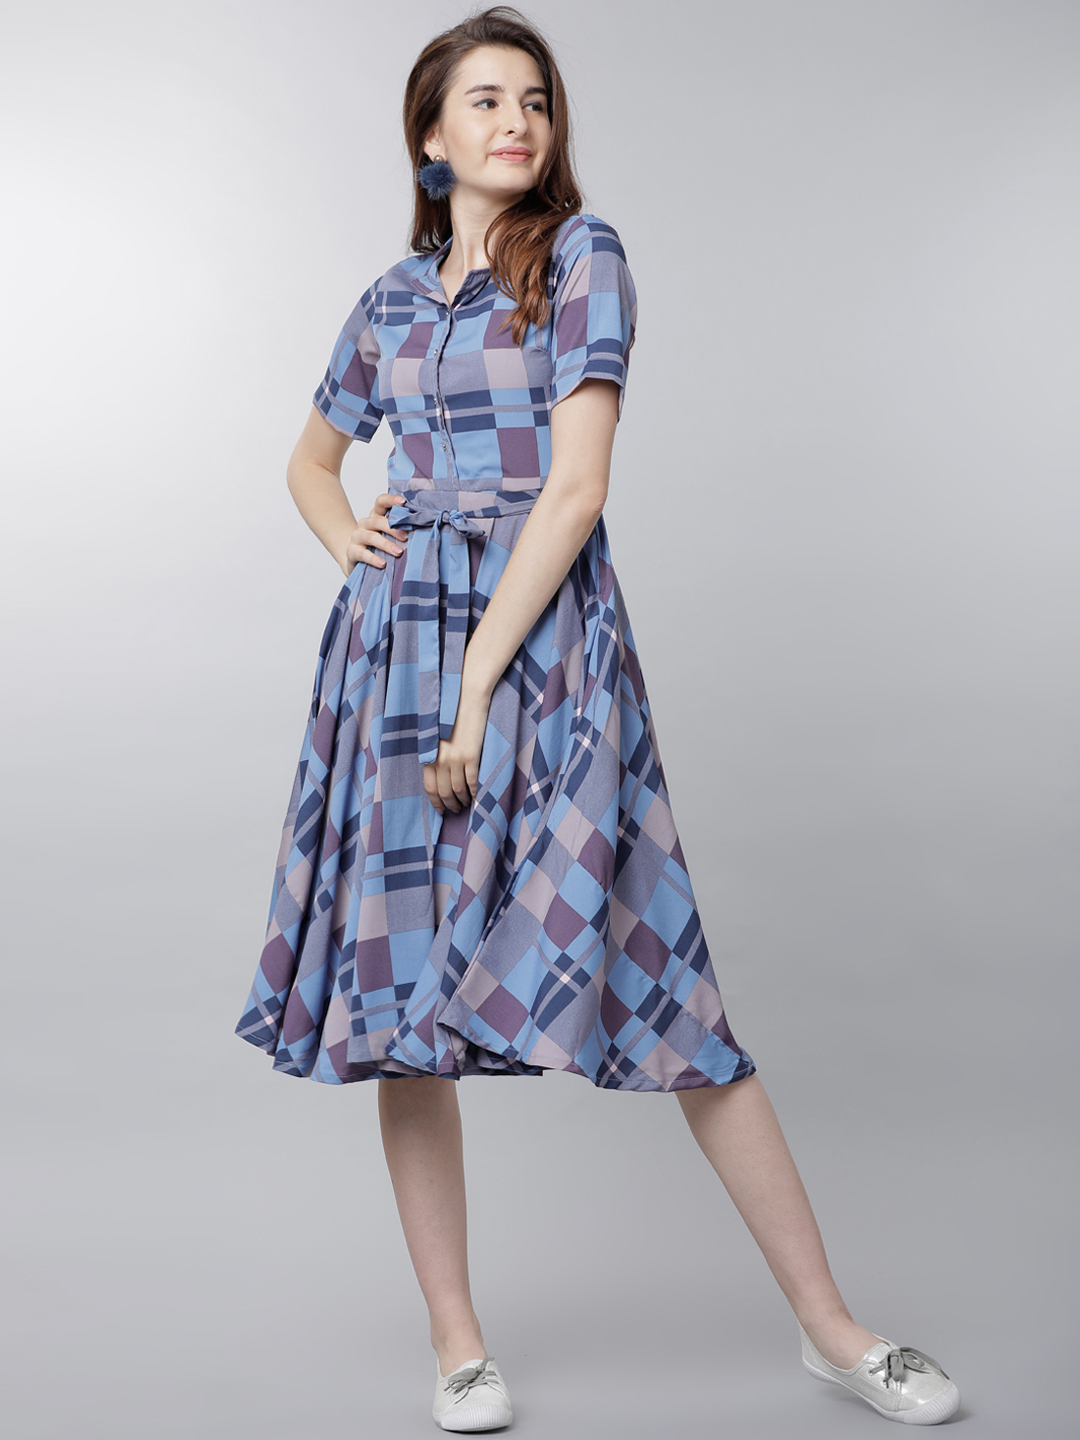 b42500c5e8 Buy Tokyo Talkies Women Blue Checked Fit and Flare Dress Online ...